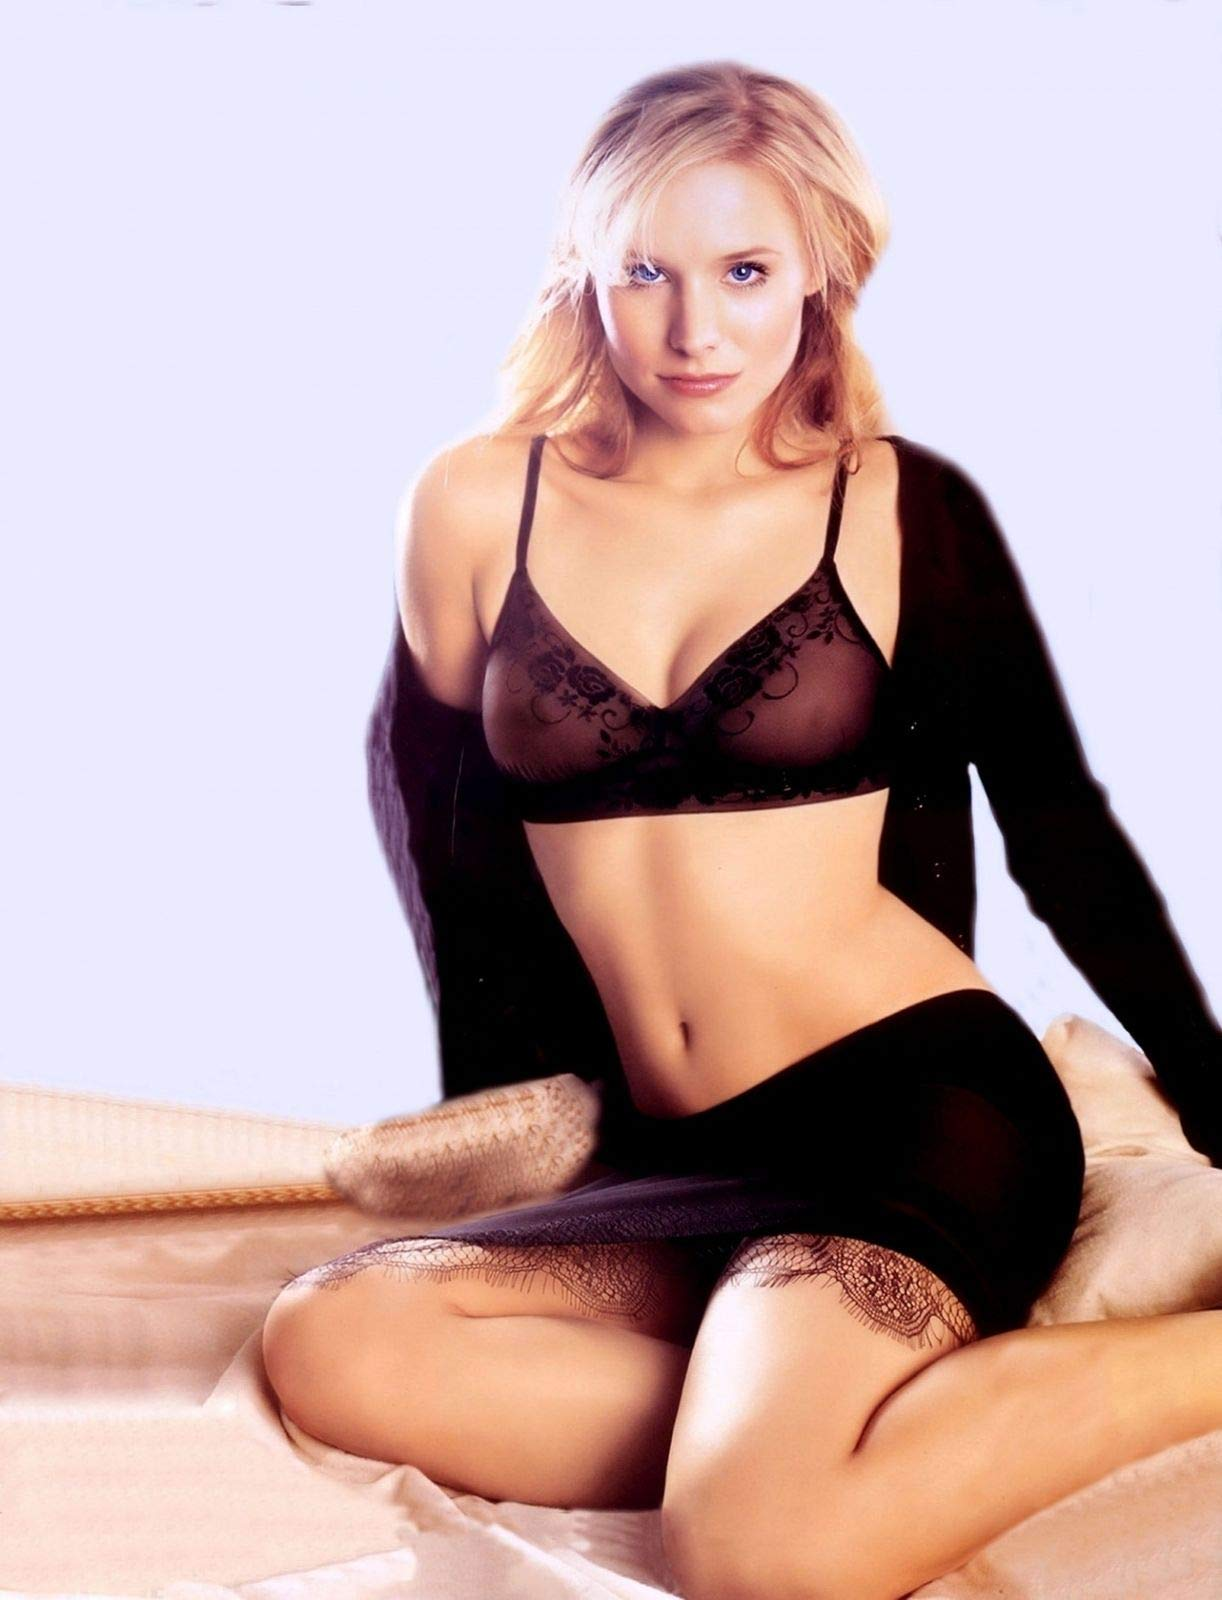 Kristen Bell 8x10 Photo - No Image is Cropped. No white or black borders, What you see is what you get. #KKB33